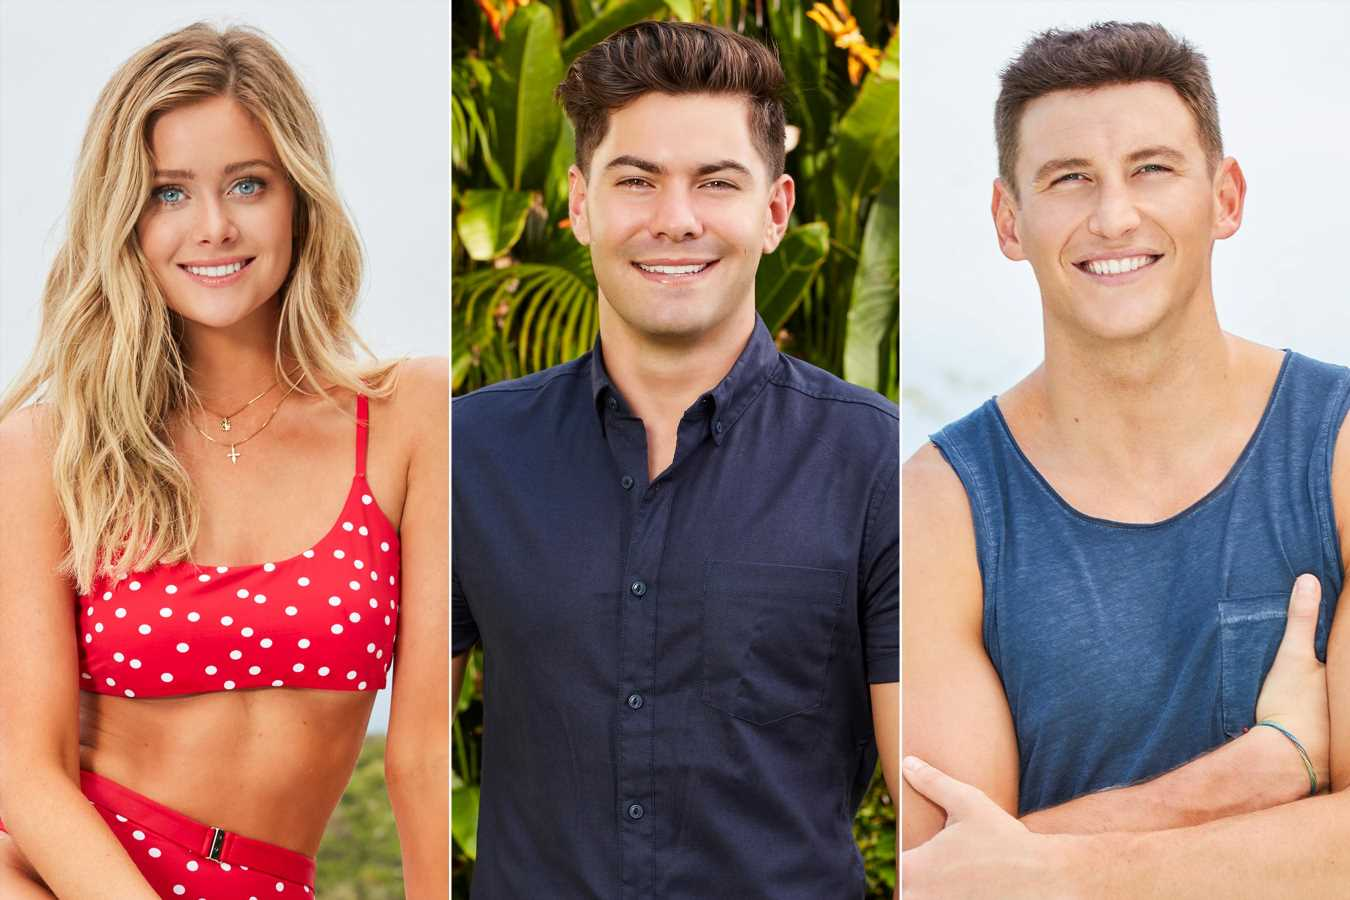 Bachelor in Paradise: Did Blake and Hannah Date Before the Show?